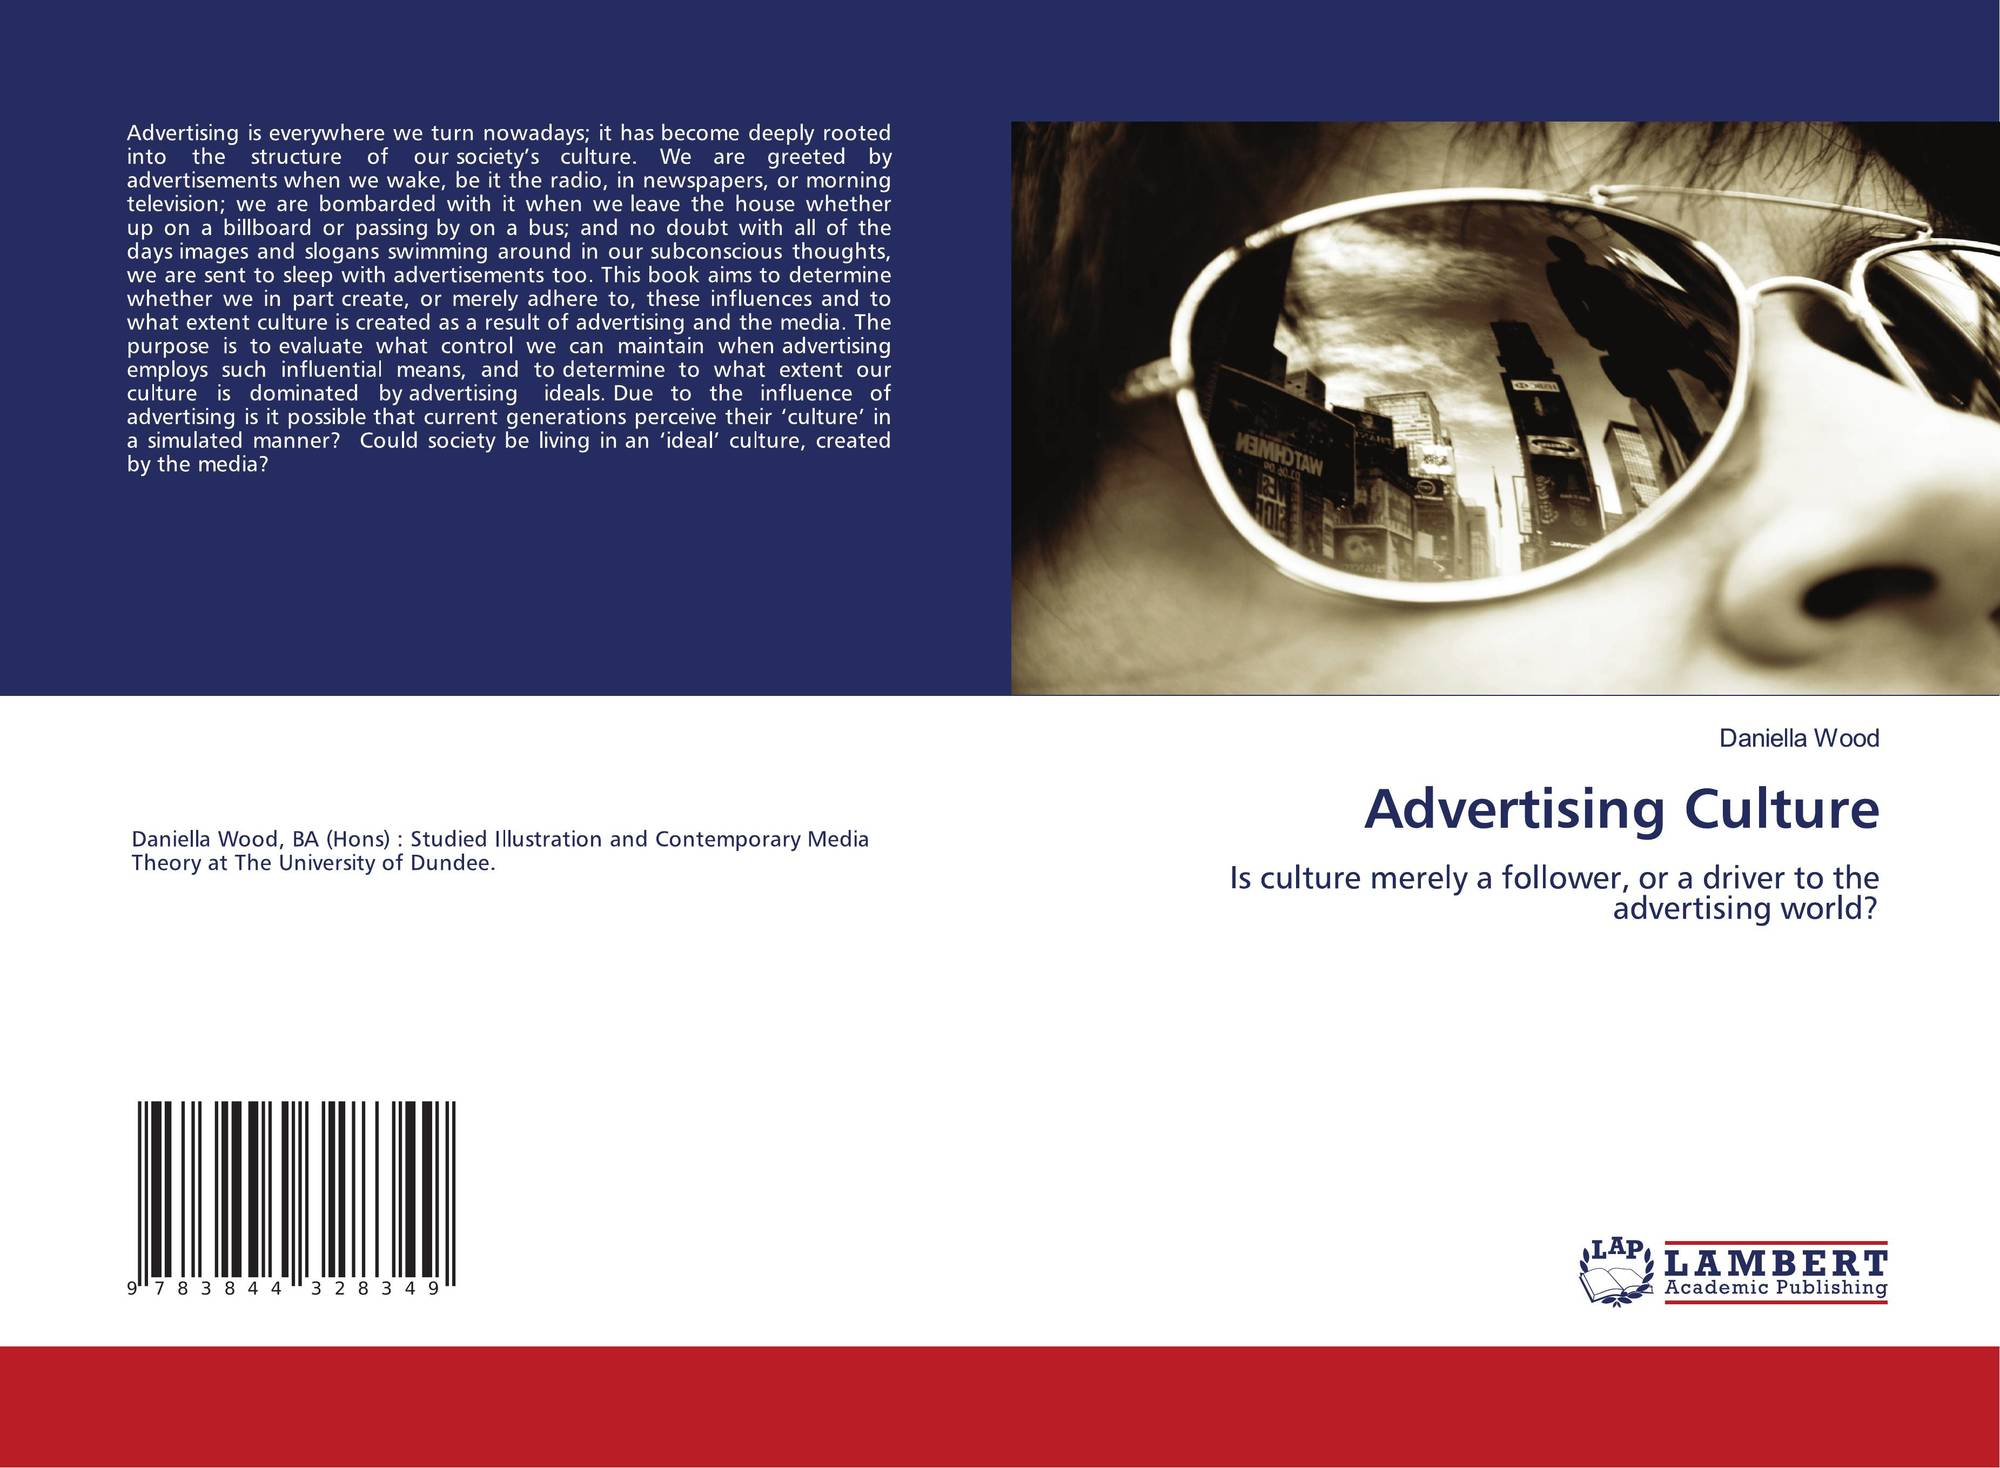 the use of celebrities in advertising cultural studies essay Gender and advertising how gender shapes meaning  ads in china reflect cultural changes from the communist era, where the communist-led government in china made an effort to expand women's roles outside the family to become economically productive additionally, aspects.